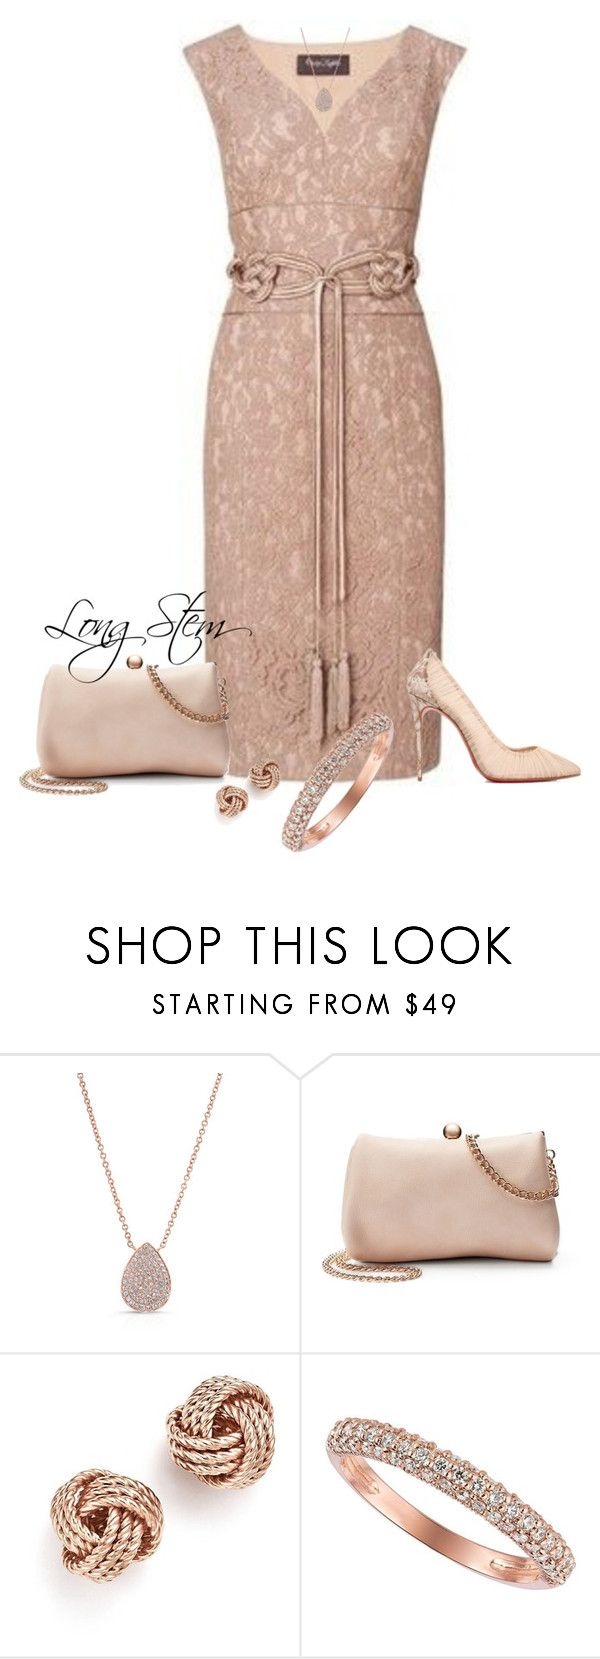 """5/31/17"" by longstem ❤ liked on Polyvore featuring Phase Eight, Christian Louboutin, Anne Sisteron, LC Lauren Conrad, Bloomingdale's and Morris & David"